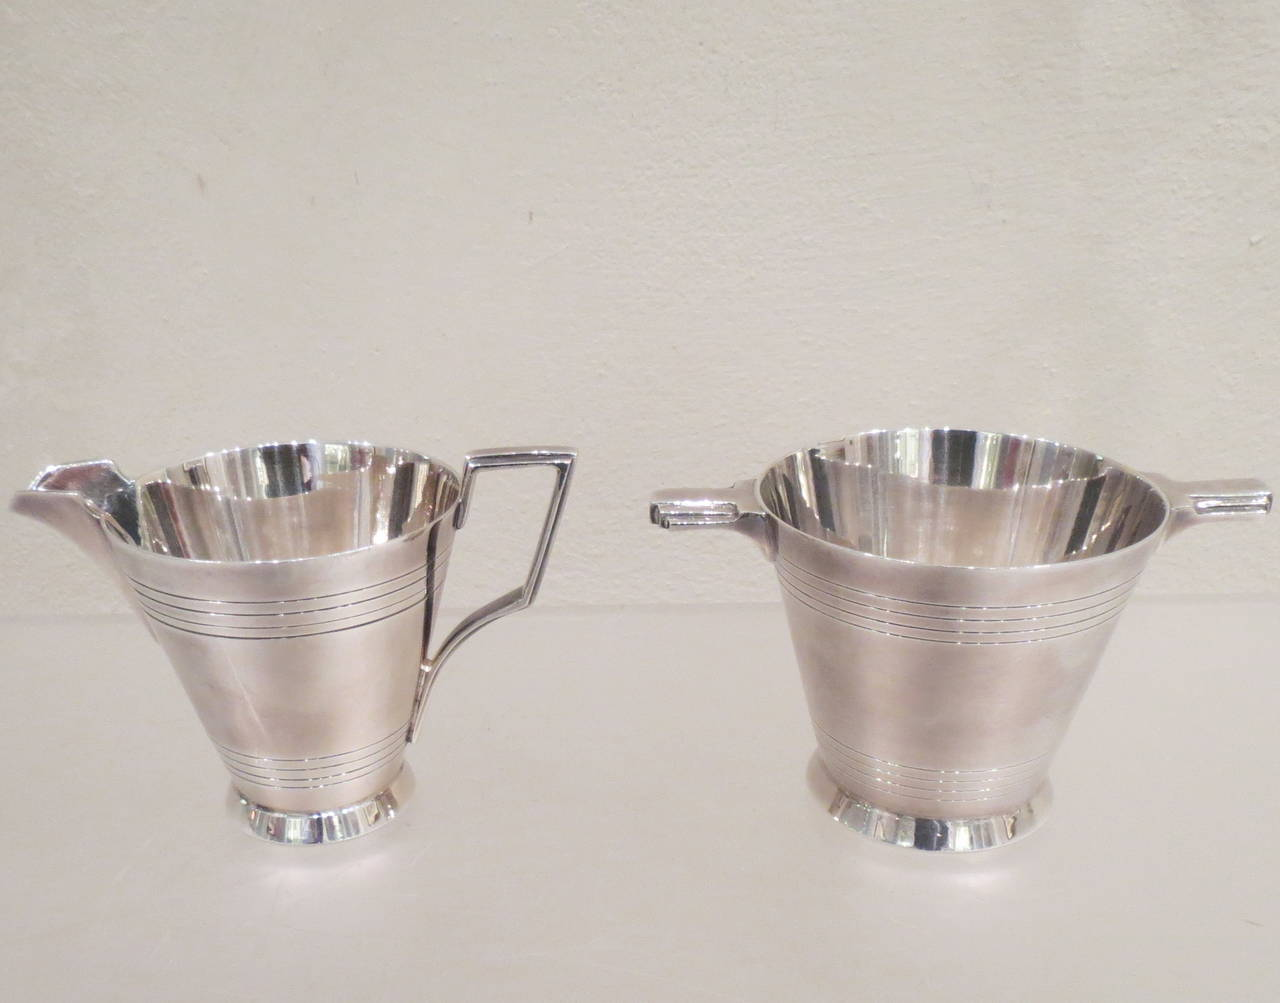 Four-Piece Art Deco Silver Plate Tea and Coffee Service by Walker & Hall For Sale 4